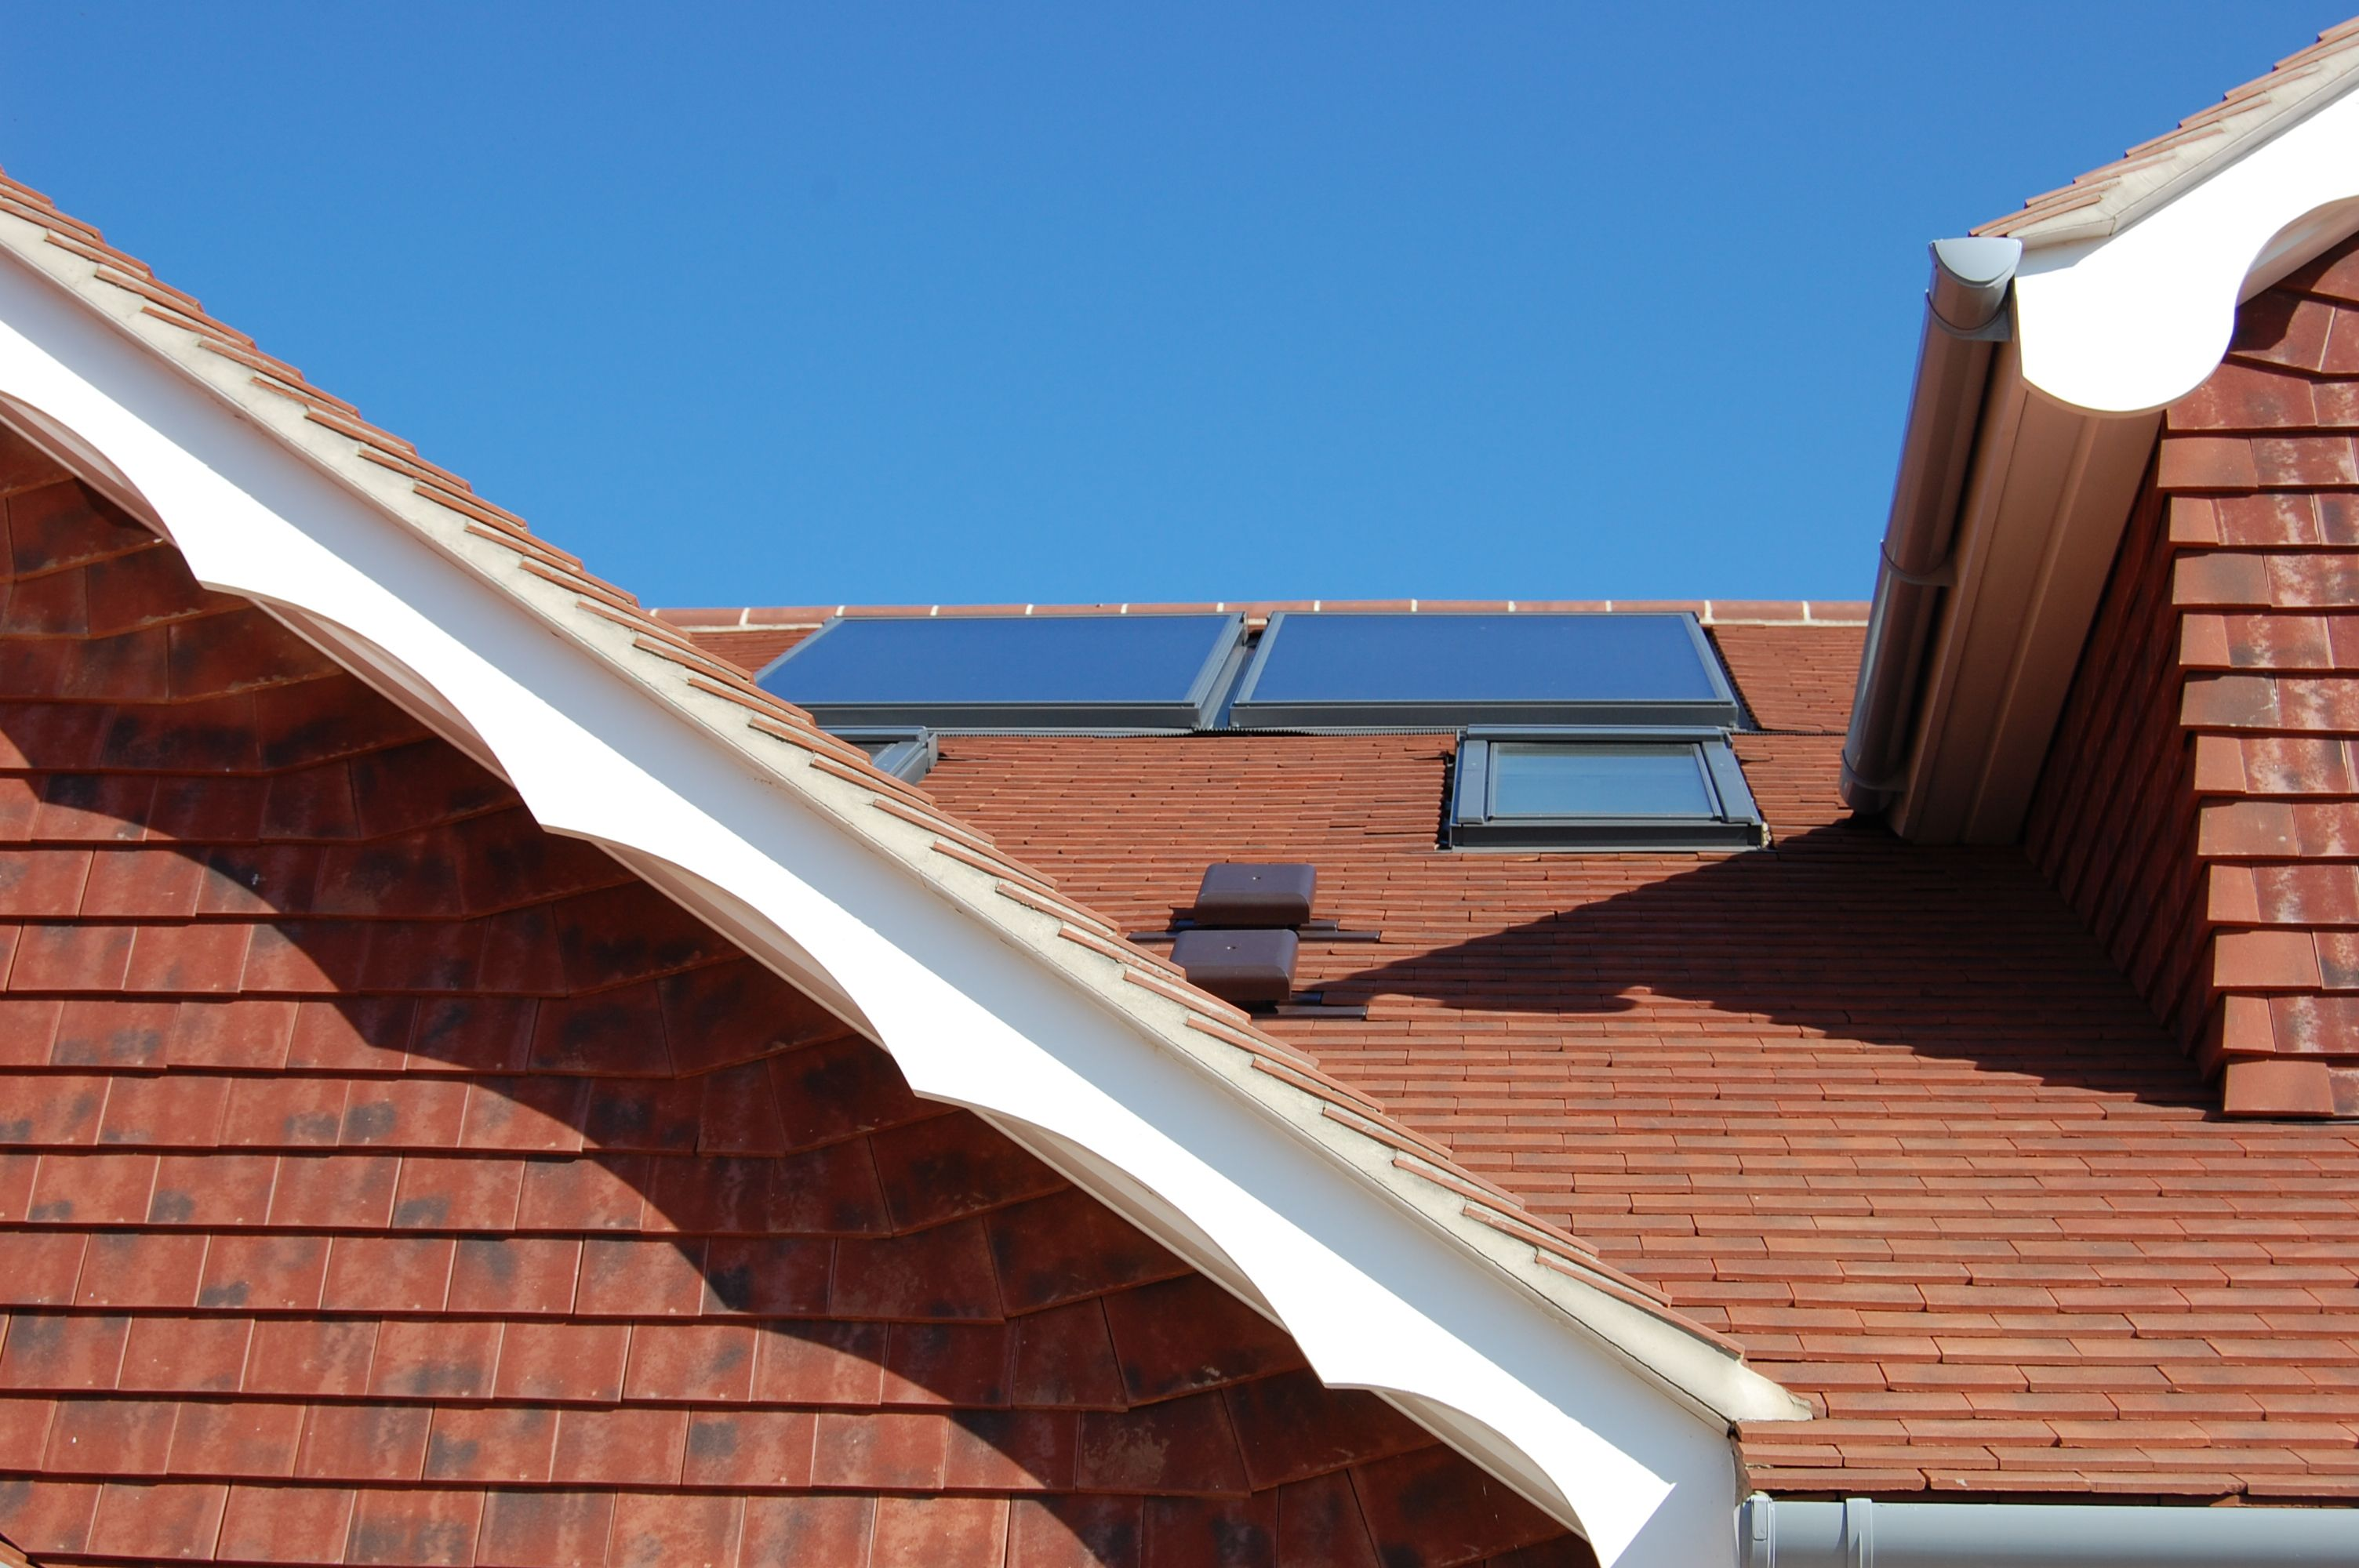 Solar Thermal Panels By Velux Solar Thermal Panels Room With